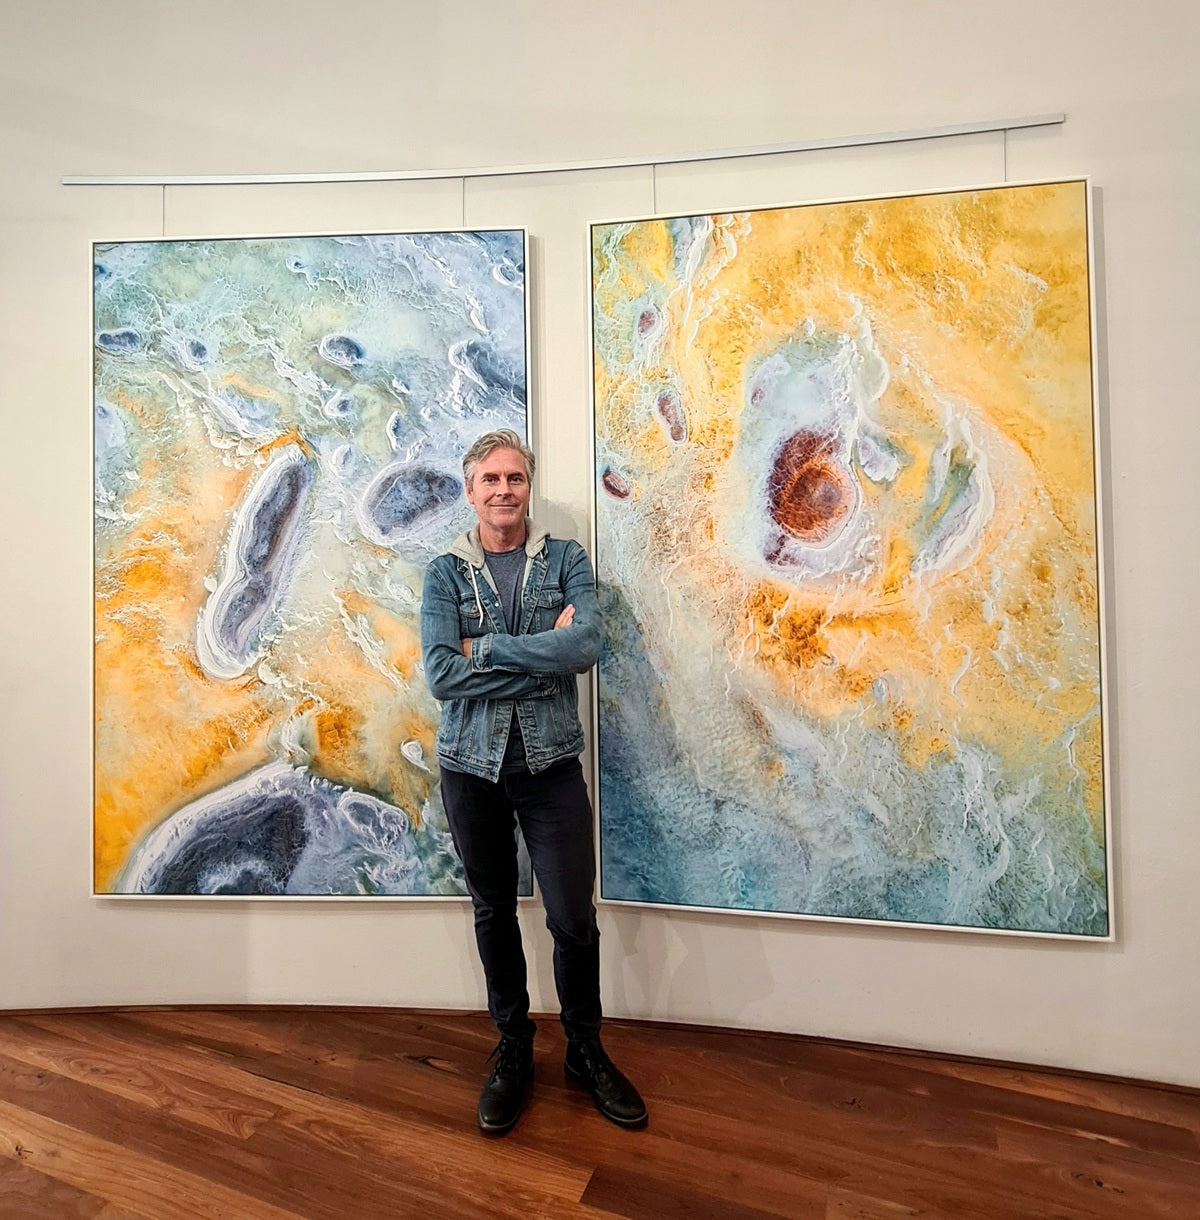 Christian Fletcher standing in front of two large 2m aerial photographs printed on canvas.